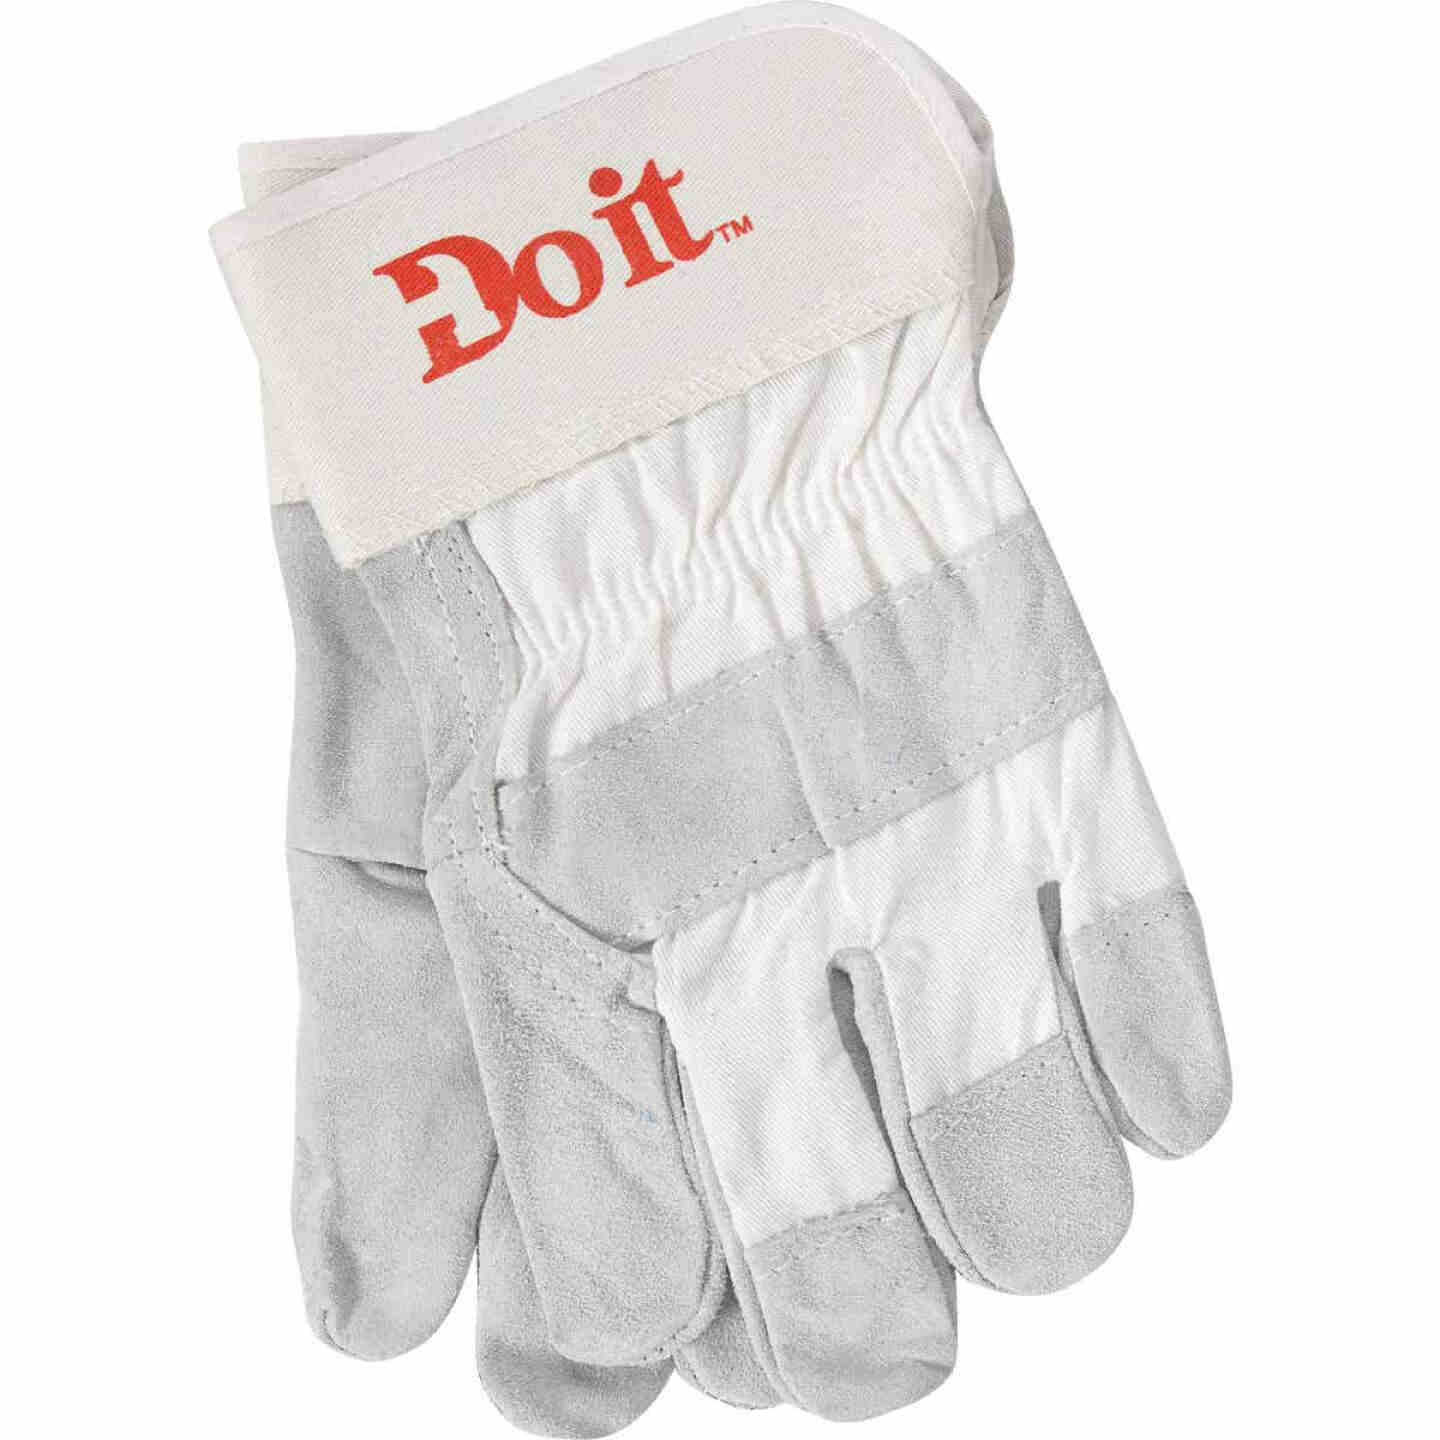 Do it Men's Large Leather Work Glove Image 1